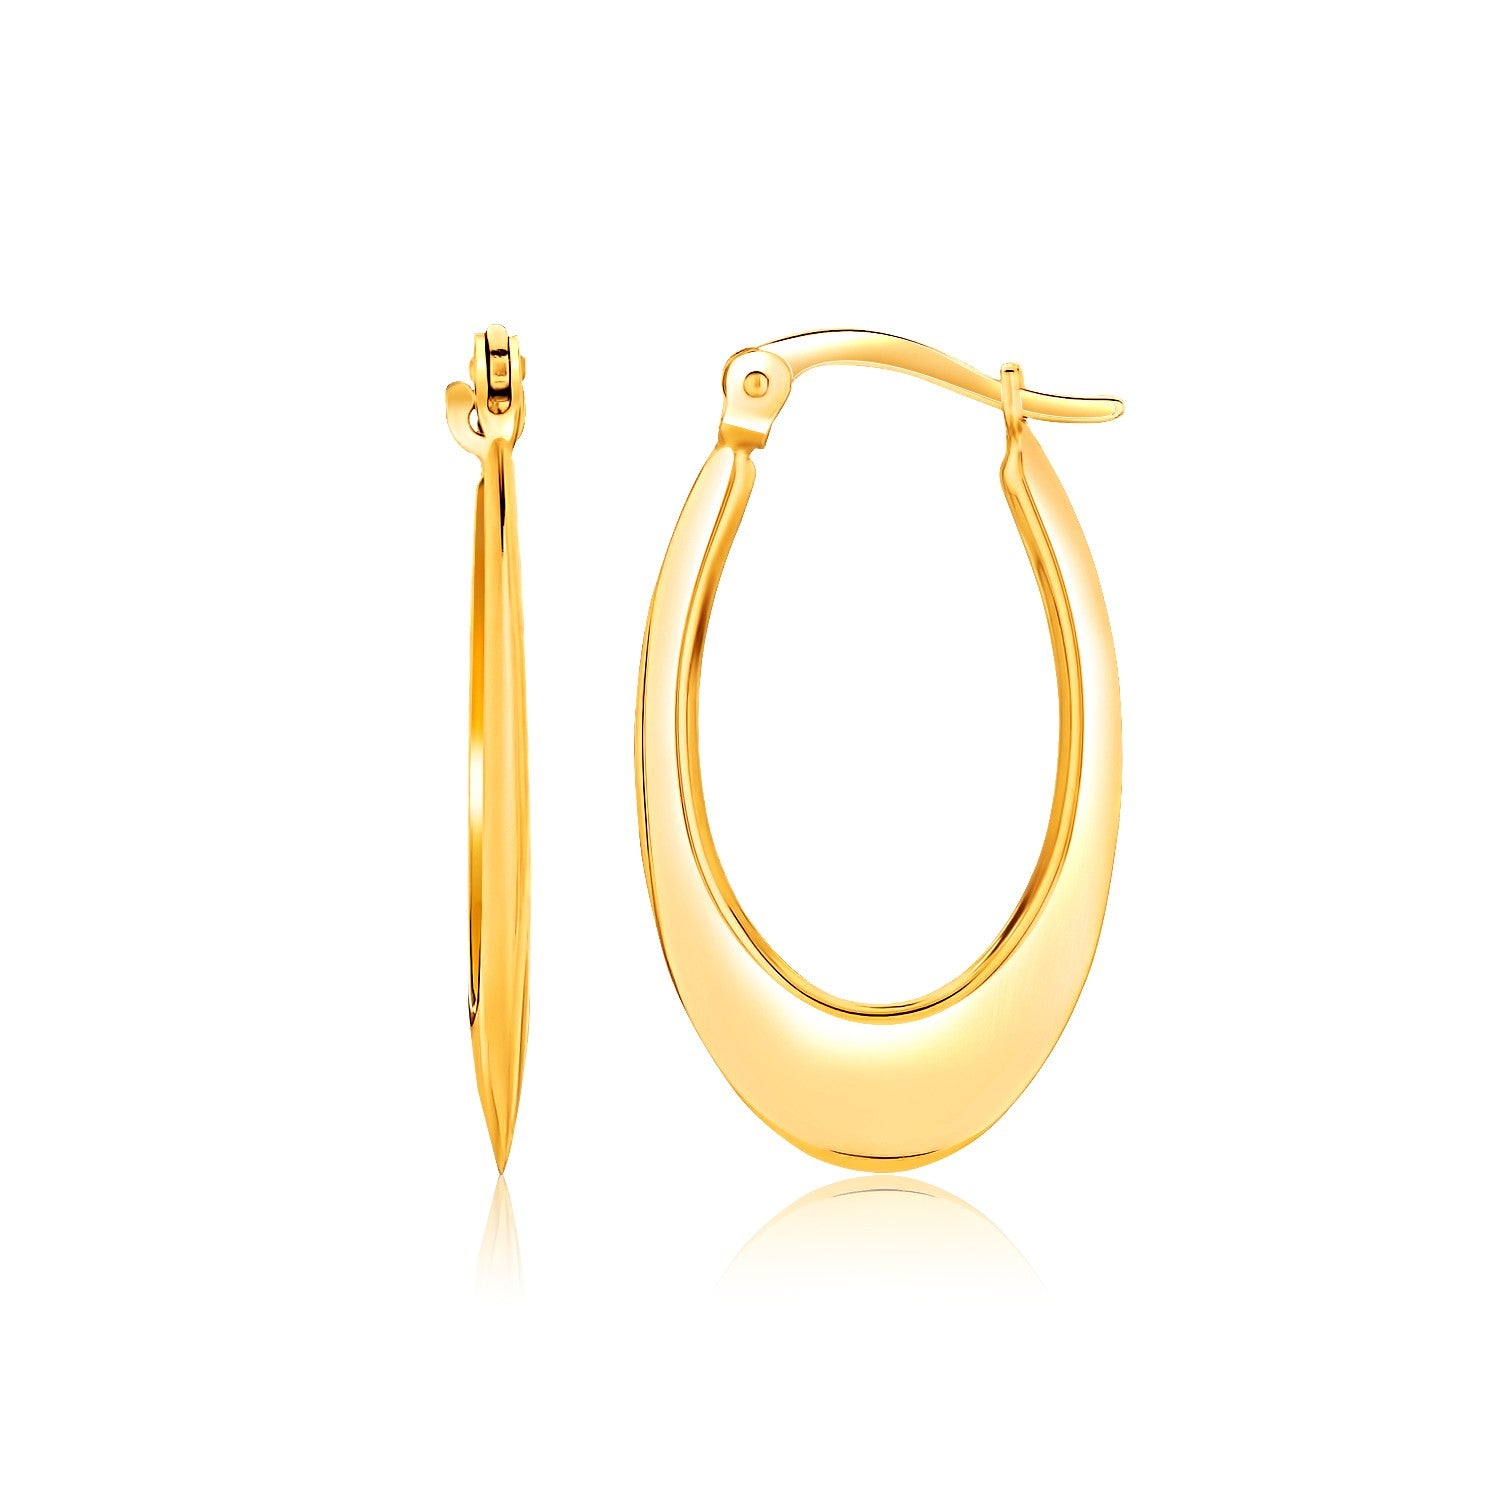 14k Yellow Gold Puffed Graduated Open Oval Earrings